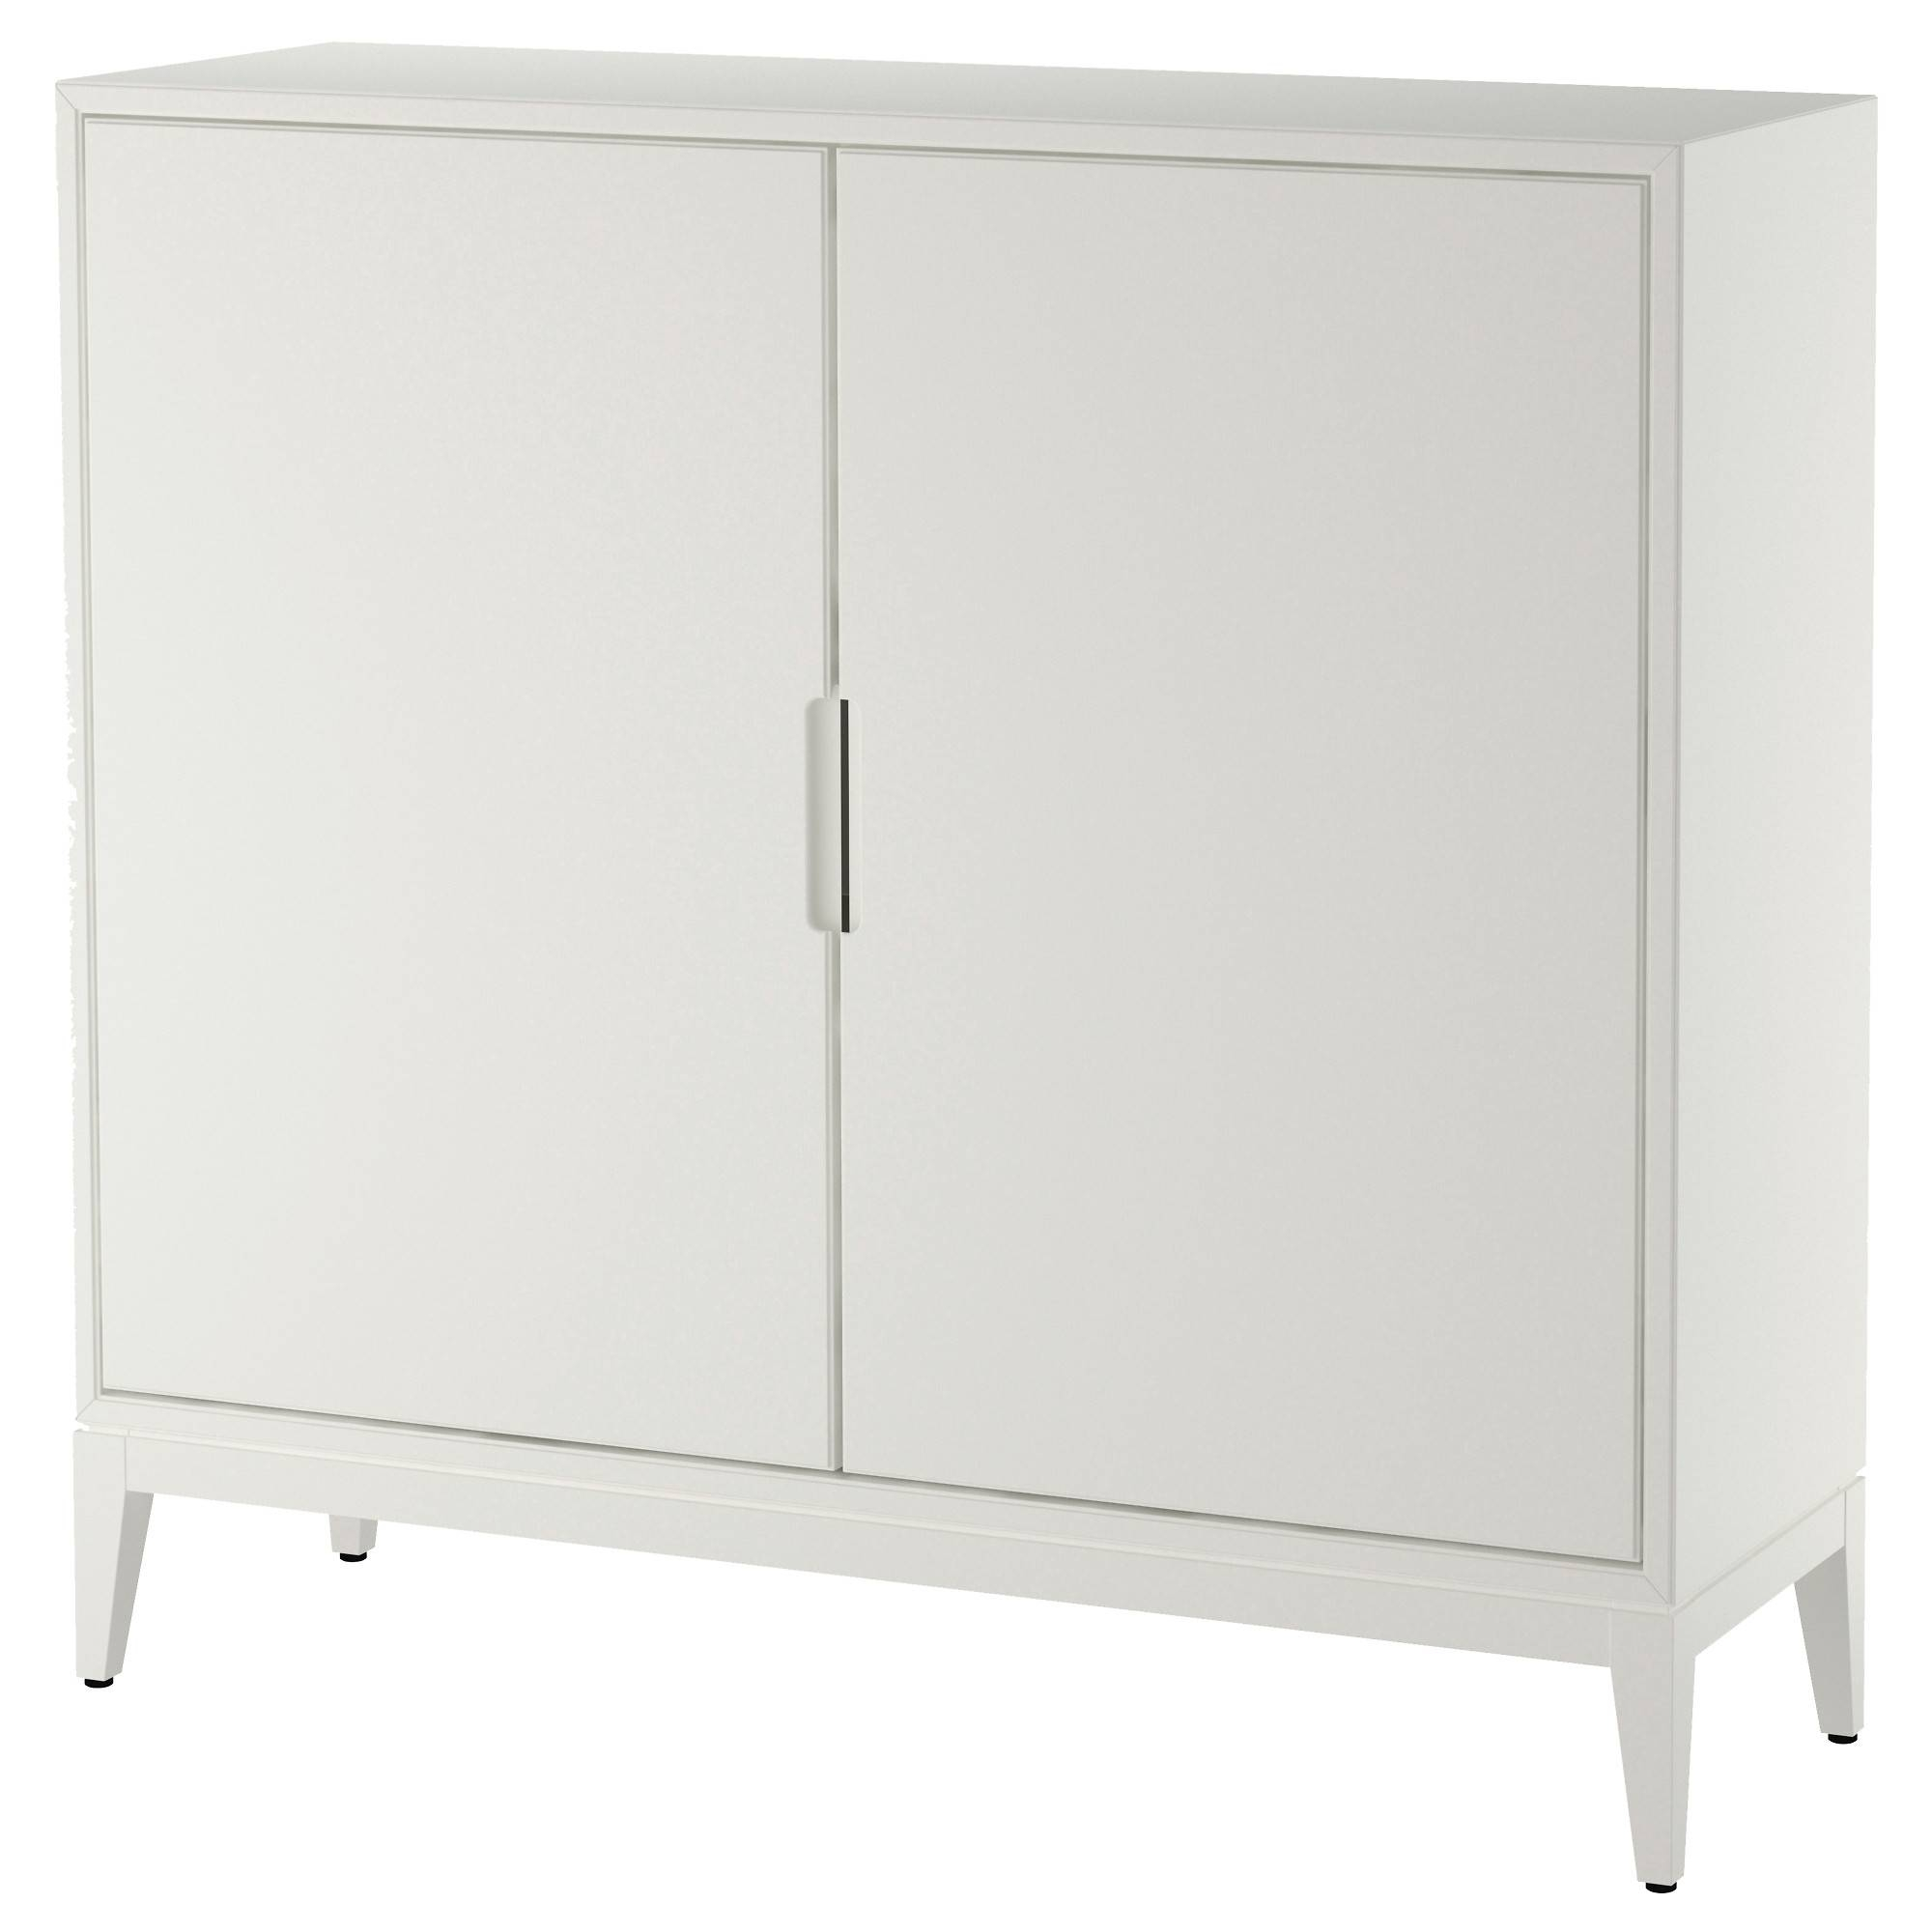 Storage Cabinets & Storage Cupboards | Ikea within White Gloss Ikea Sideboards (Image 15 of 15)